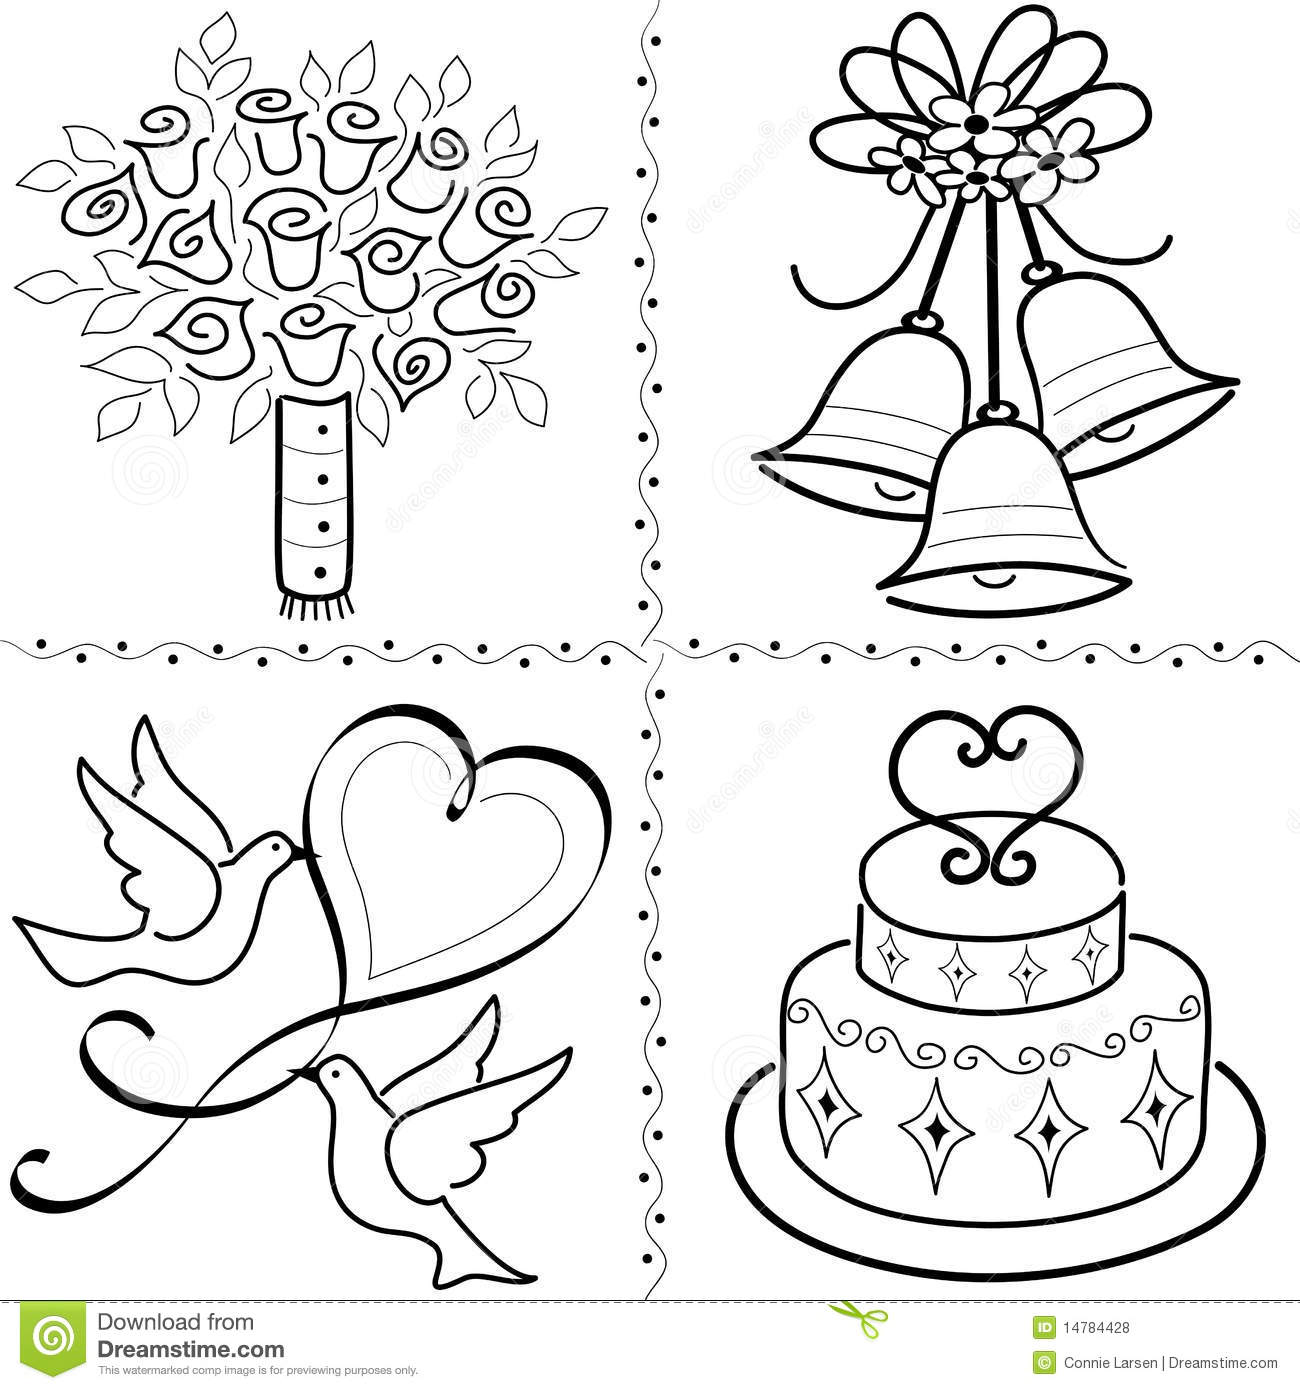 Bridal bouquet, wedding bells, doves and wedding cake.